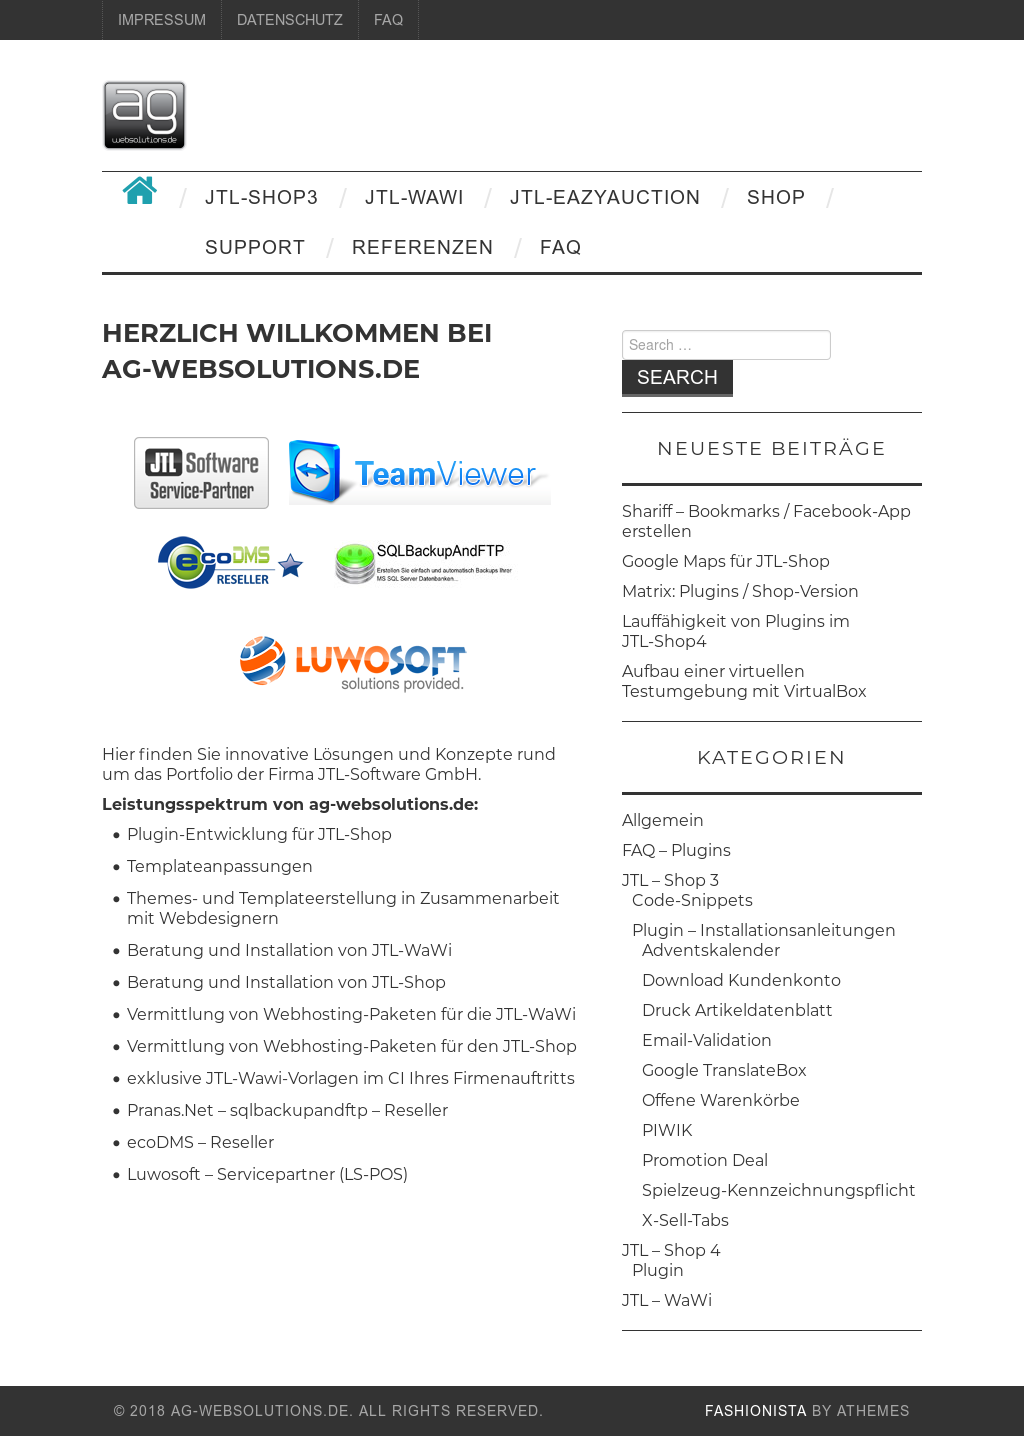 Weihnachtskalender Google.Ag Websolutions De Competitors Revenue And Employees Owler